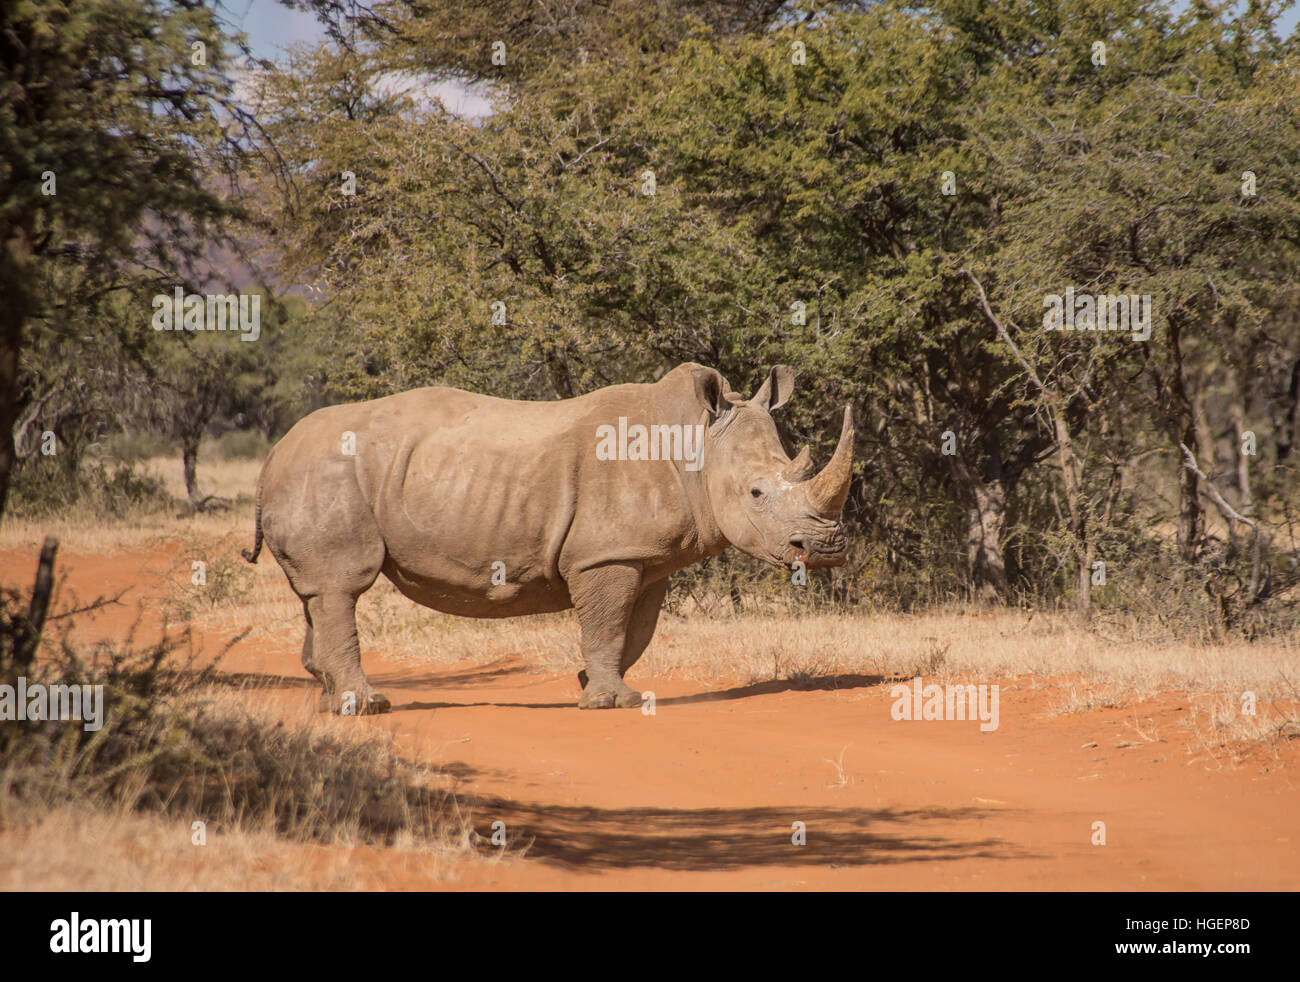 White Rhinoceros crossing road in Southern African savanna - Stock Image